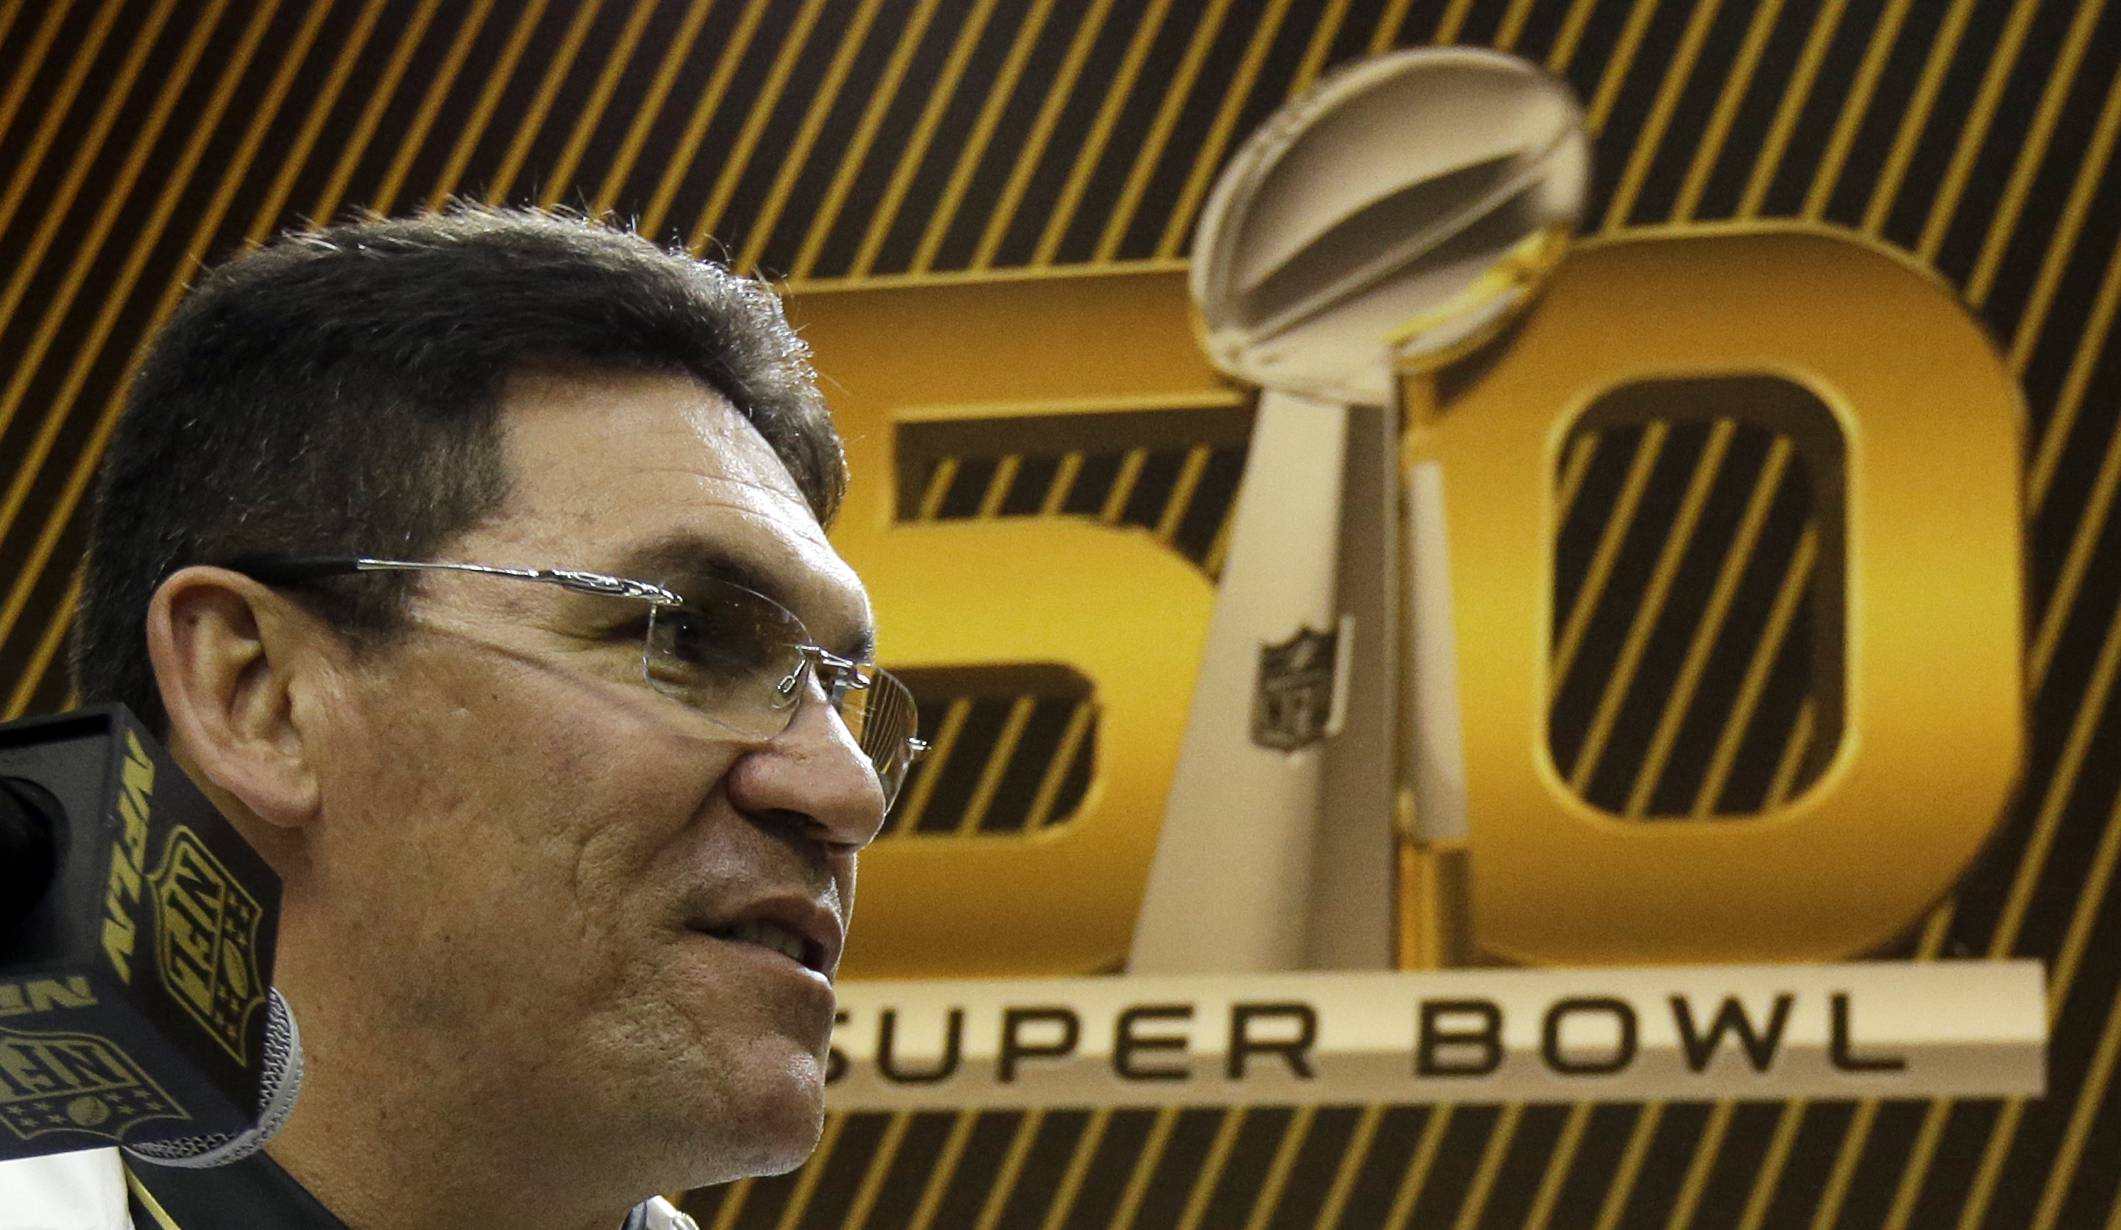 With a win in Super Bowl 50, Carolina Panthers head coach Ron Rivera can finish with the same record as his 1985 Bears teammates.